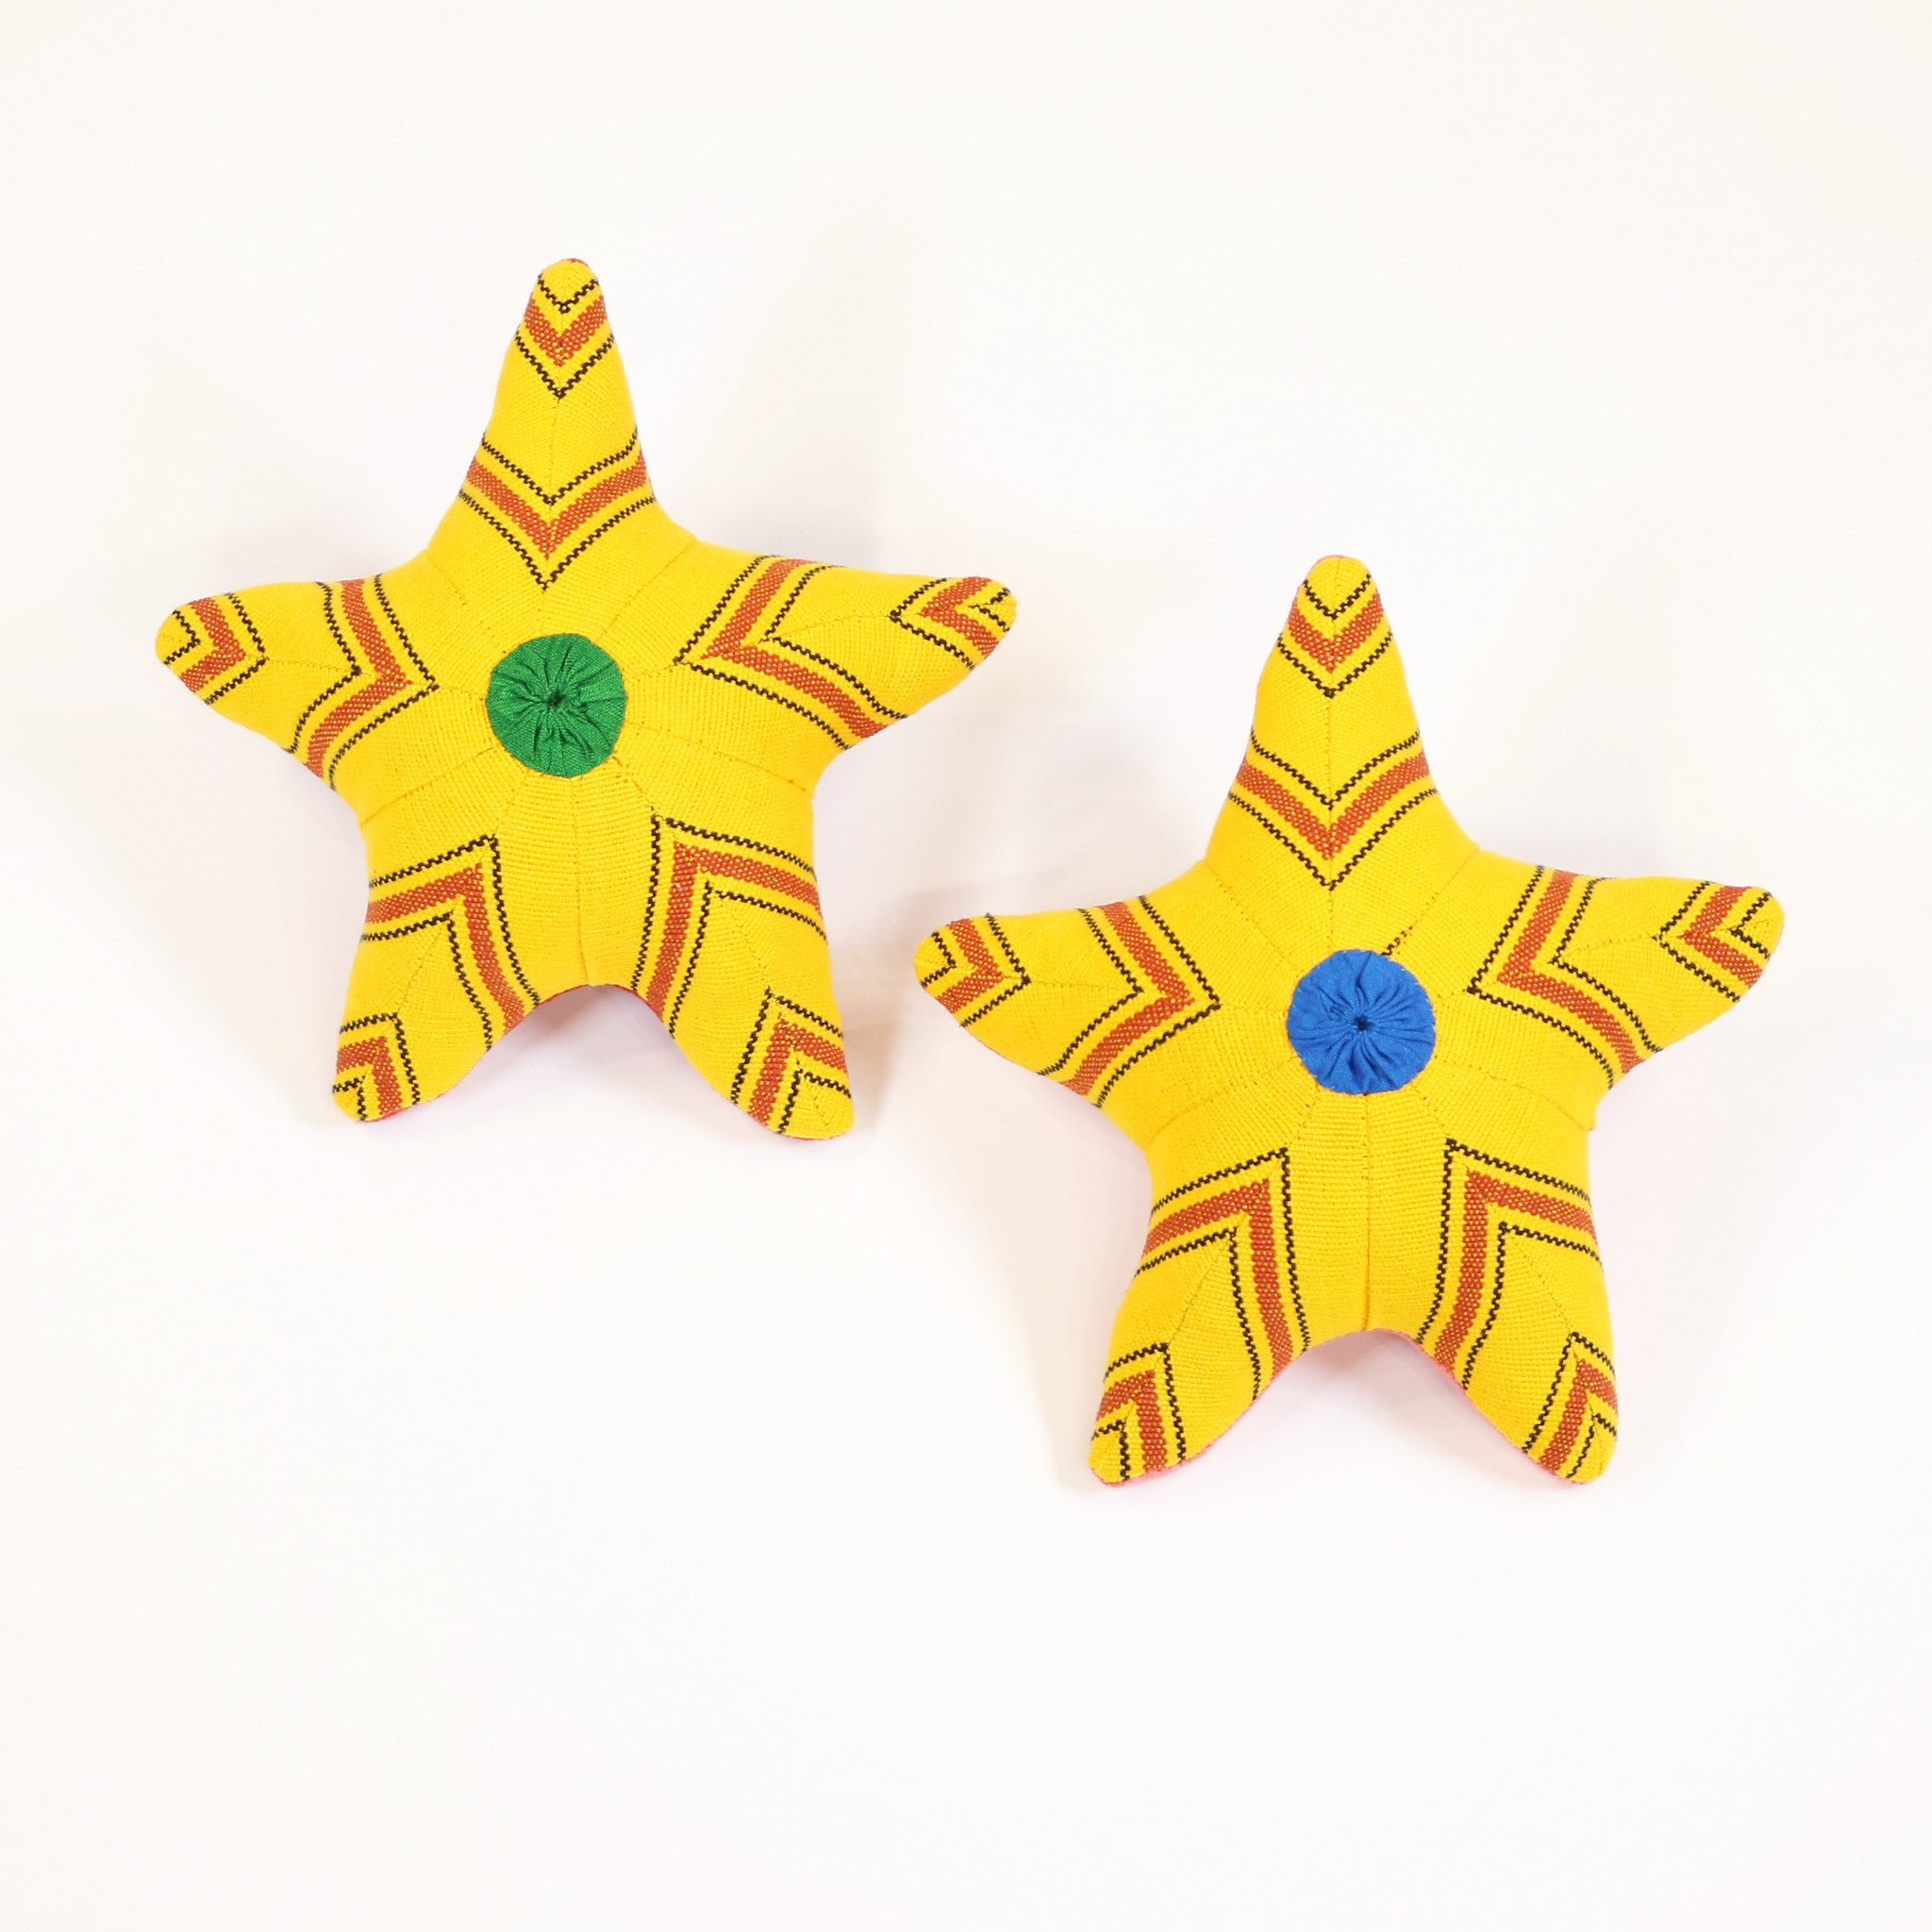 Sunny, the Starfish – all patterns (front view)